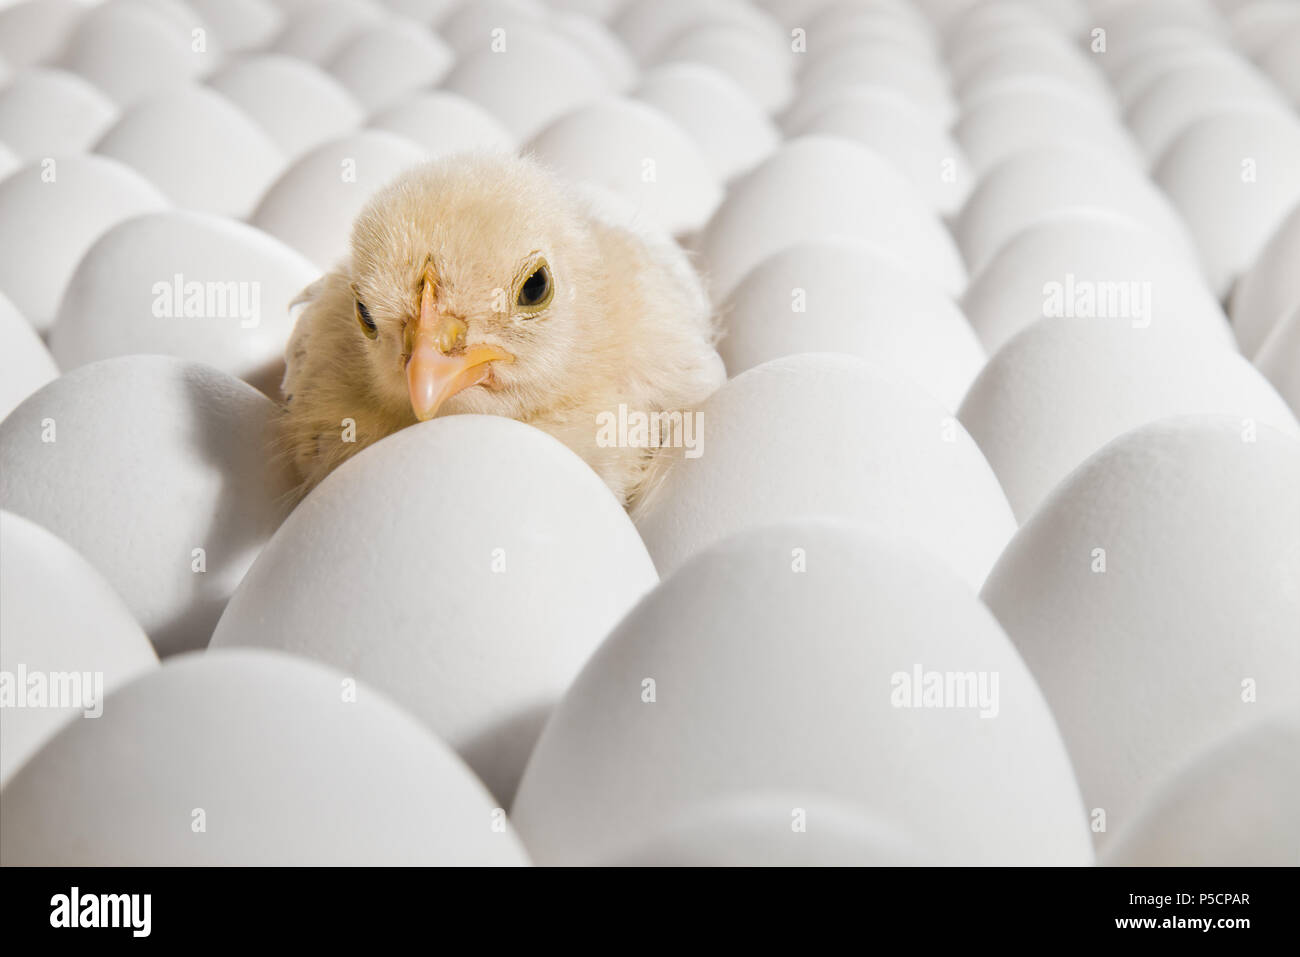 one yellow chicken nestling on many hen's-eggs, horizontal photo Stock Photo